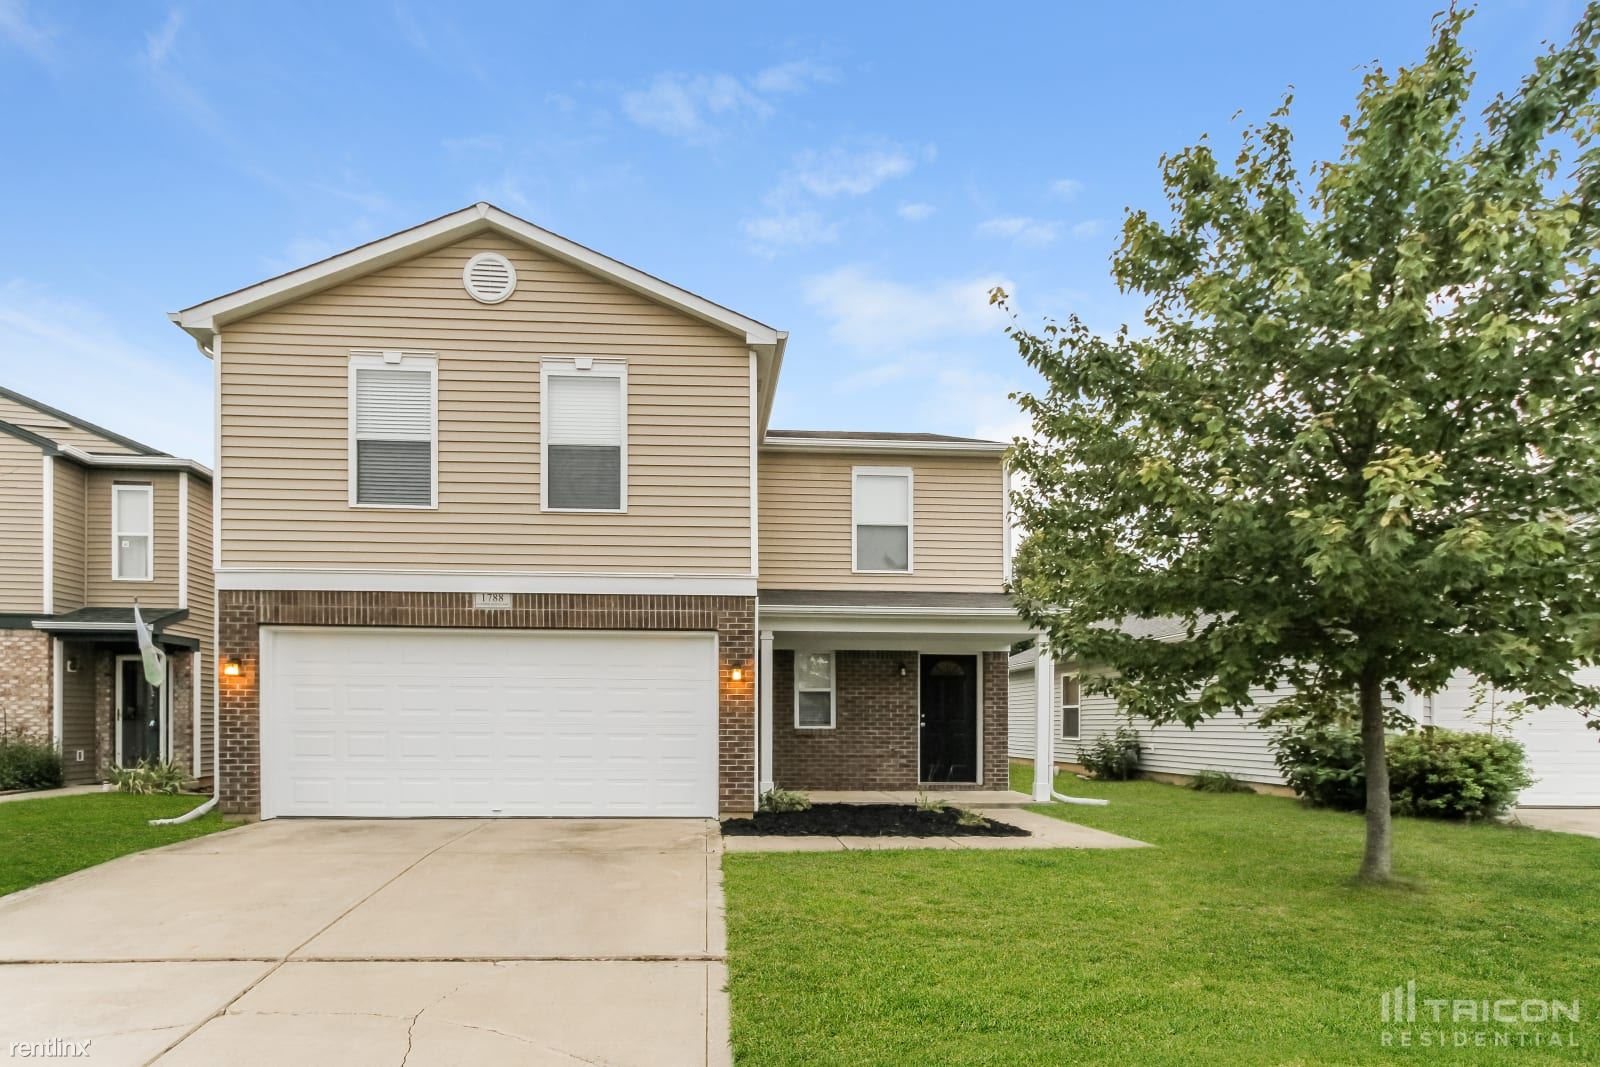 1788 Feather Reed Lane - 1549USD / month